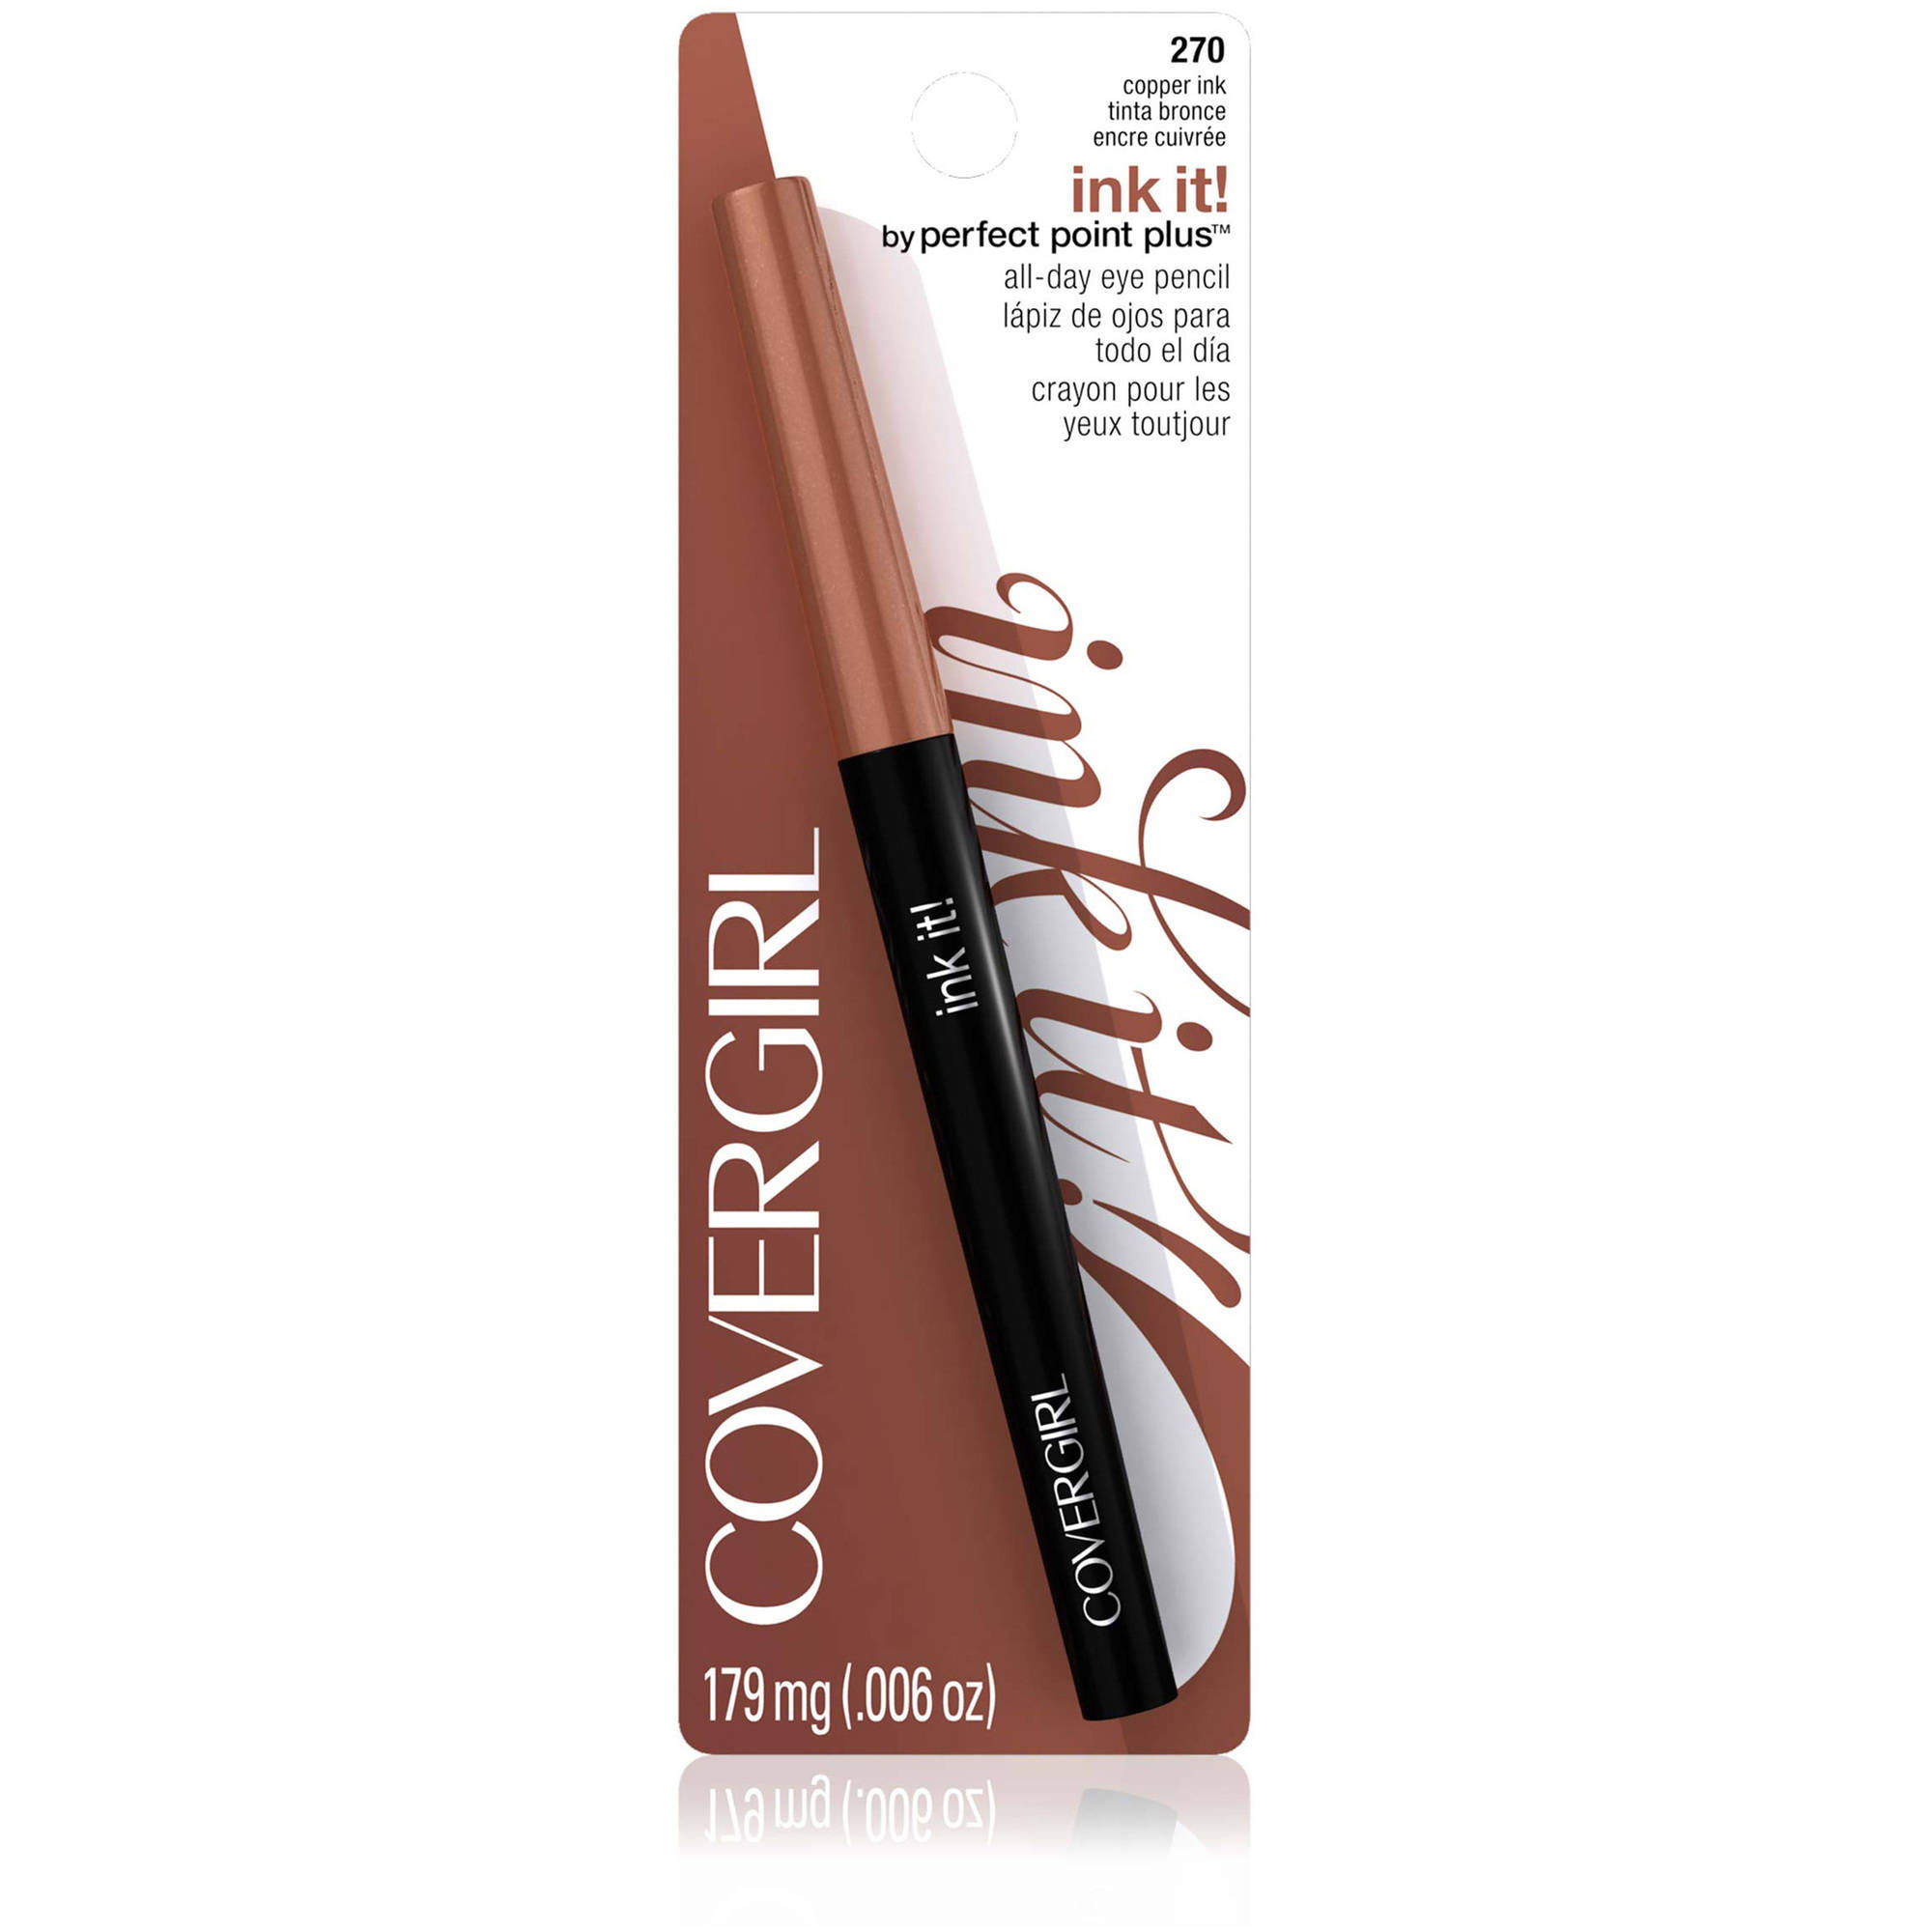 COVERGIRL Ink It! by Perfect Point Plus Eyeliner, 270 Copper Ink, 0.006 oz